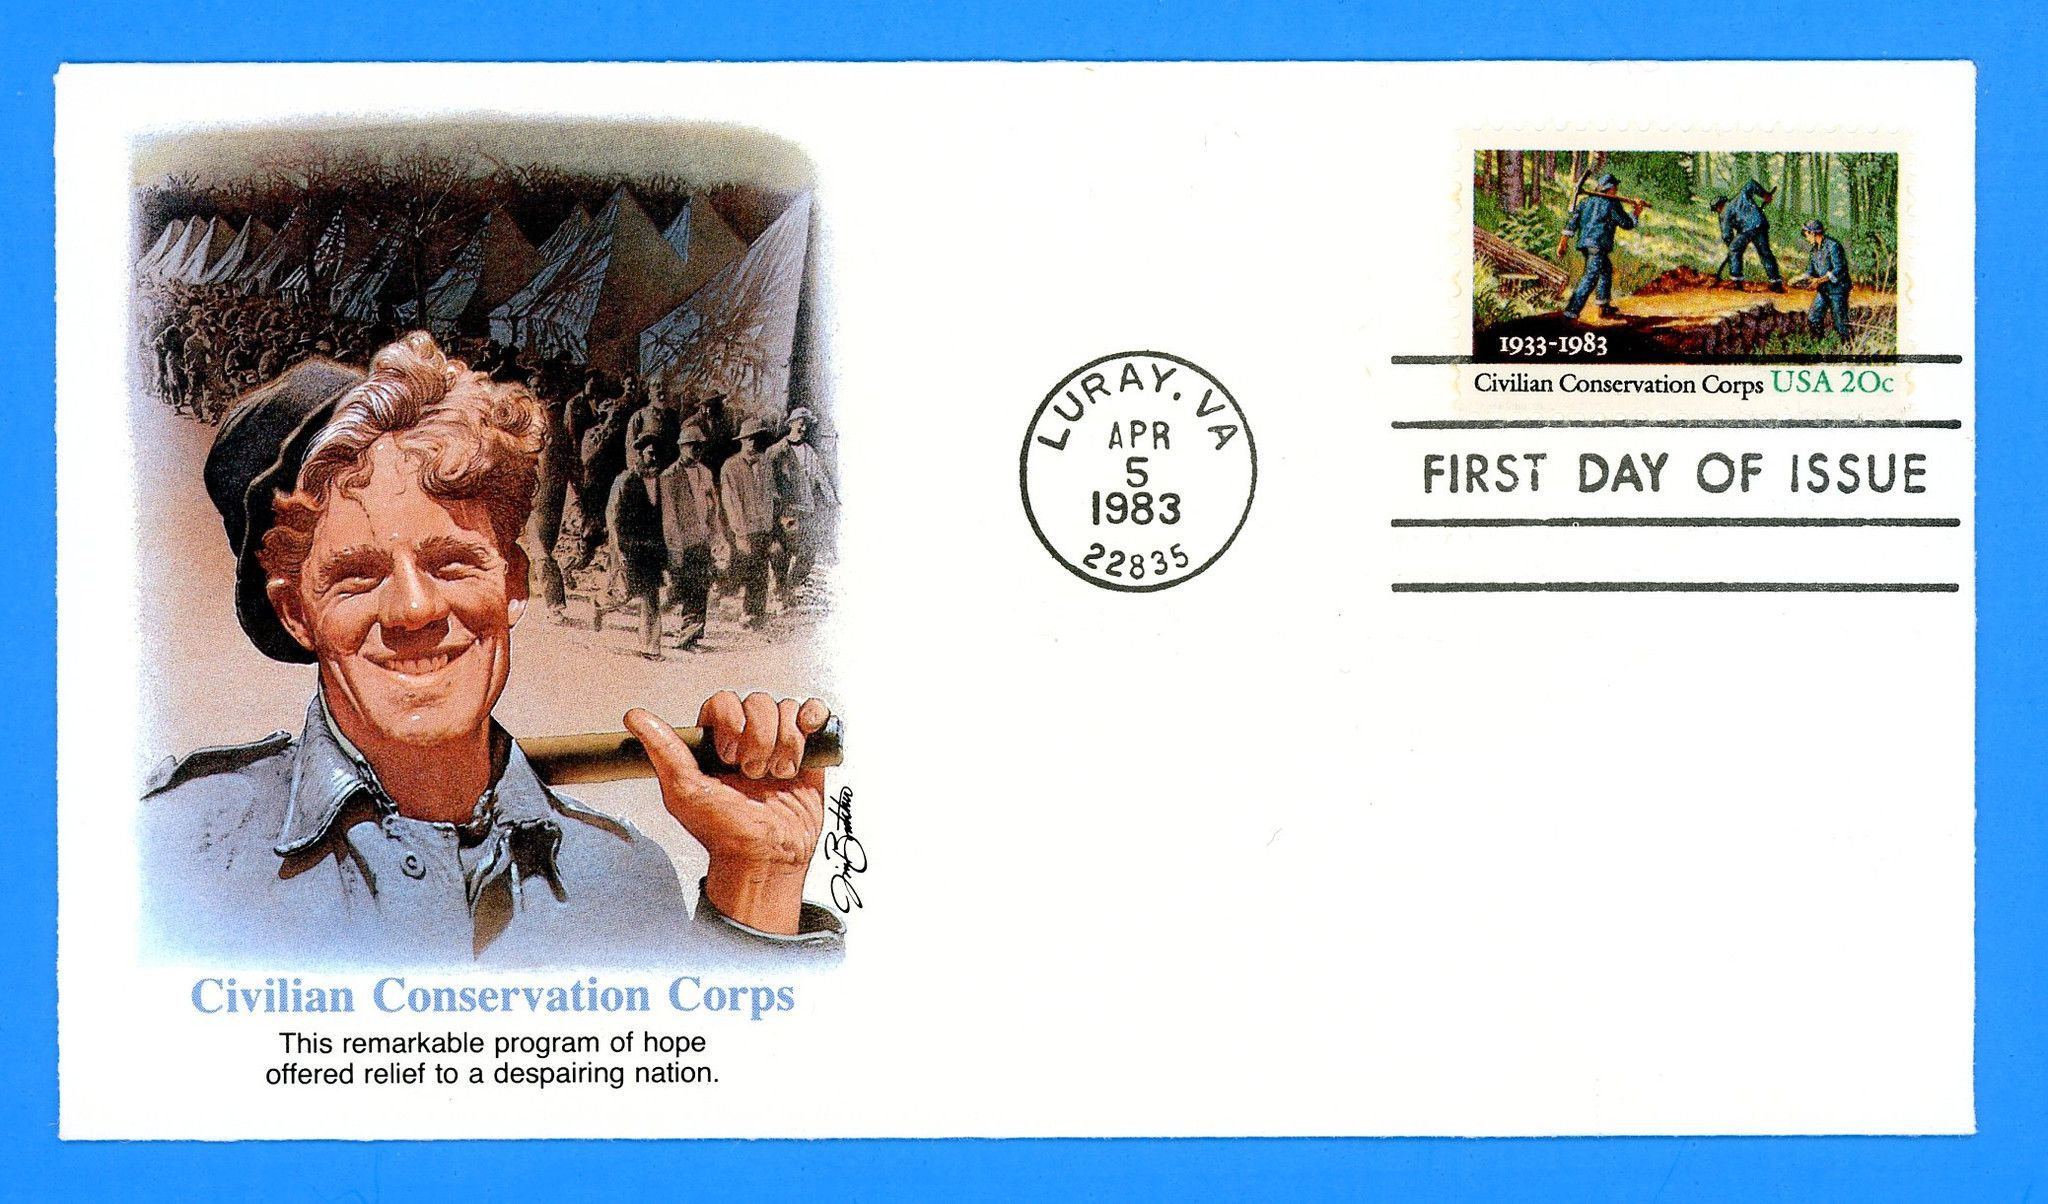 Civilian Conservation Corps First Day Cover by Fleetwood